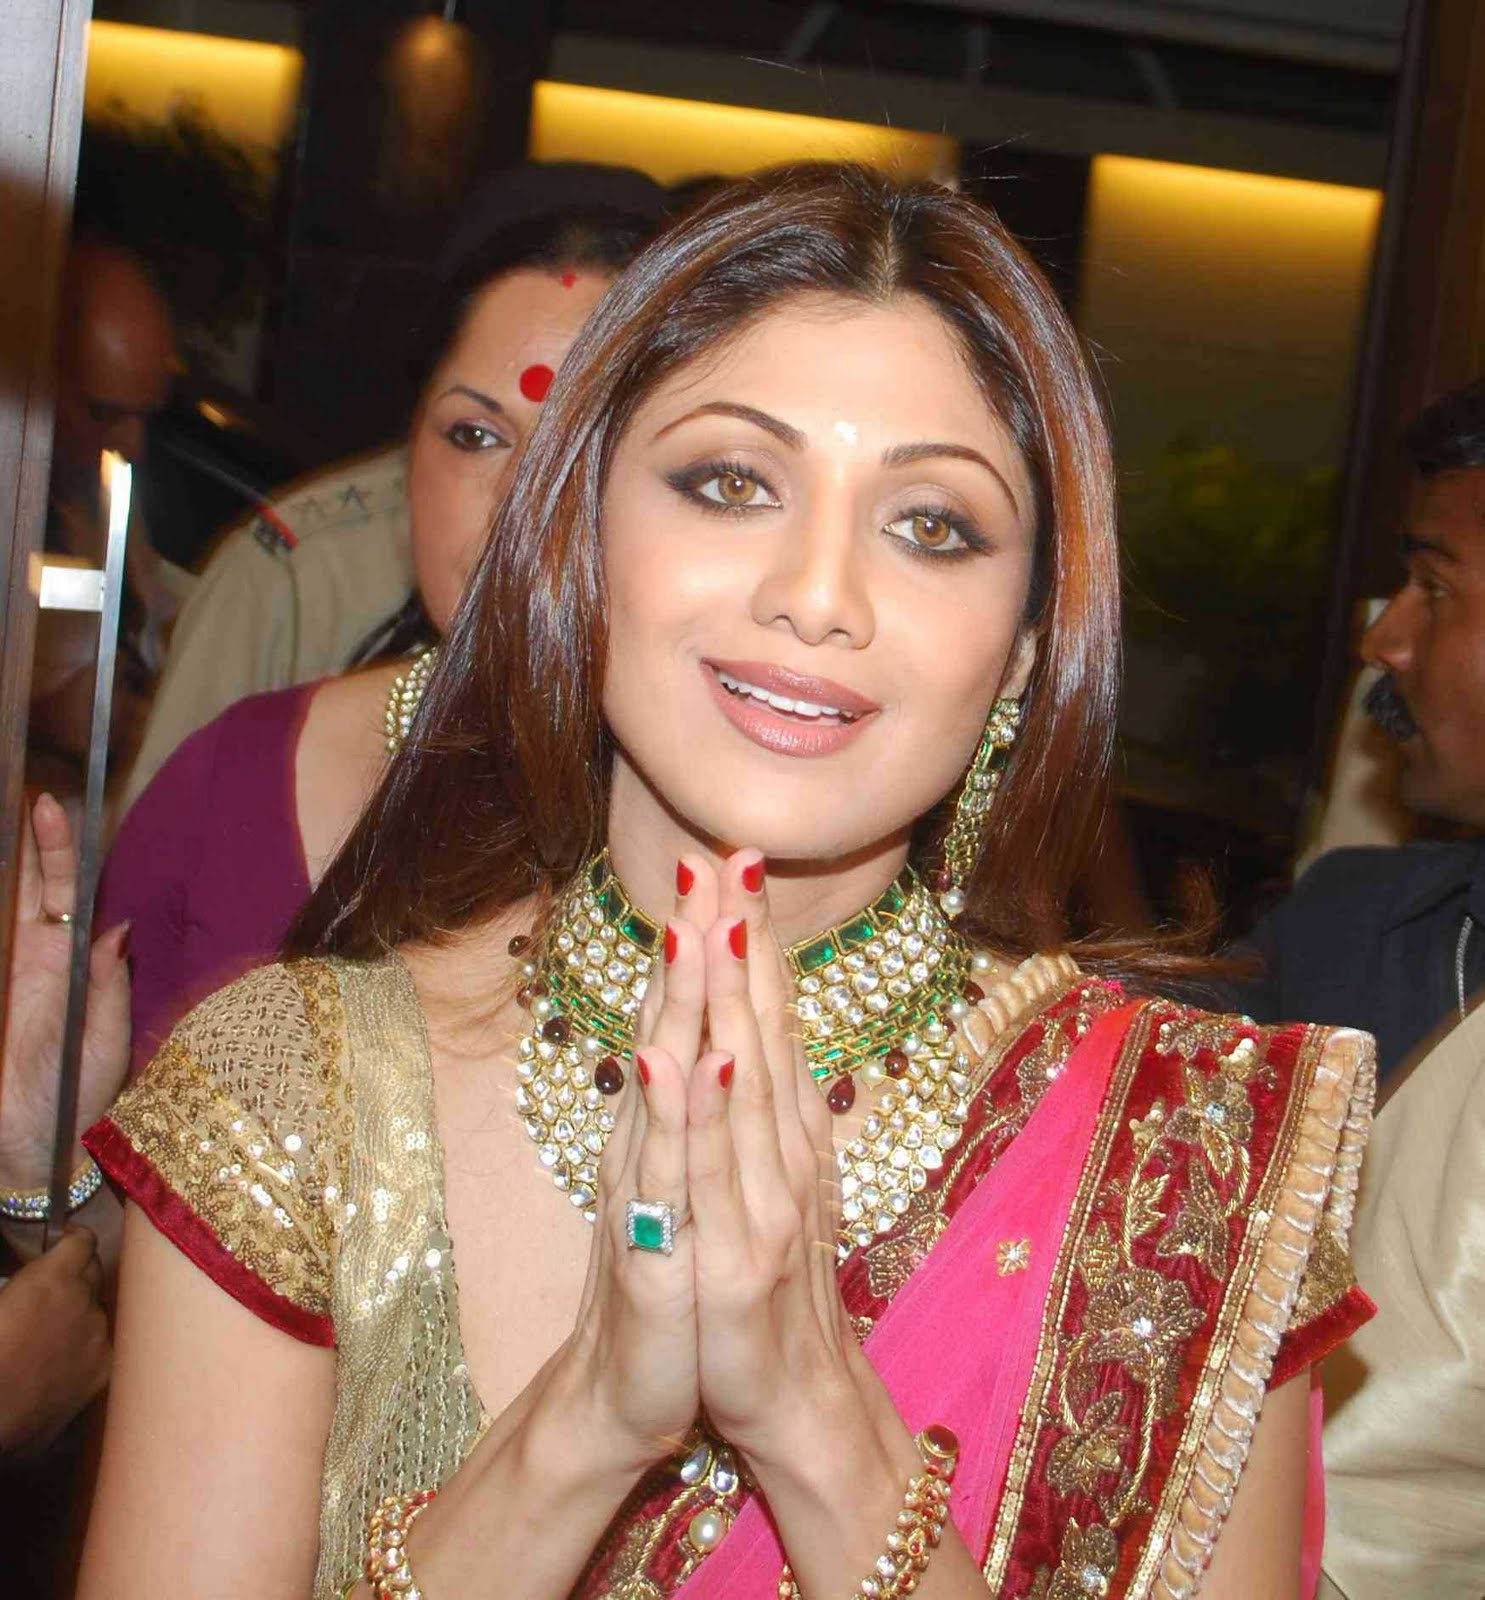 http://2.bp.blogspot.com/_NellBgY9Zqs/Sw158Ng6OSI/AAAAAAAABBI/DHotB3Eayho/s1600/Shilpa-Shetty-welcoming-guest-in-herself-wedding-pics.jpg